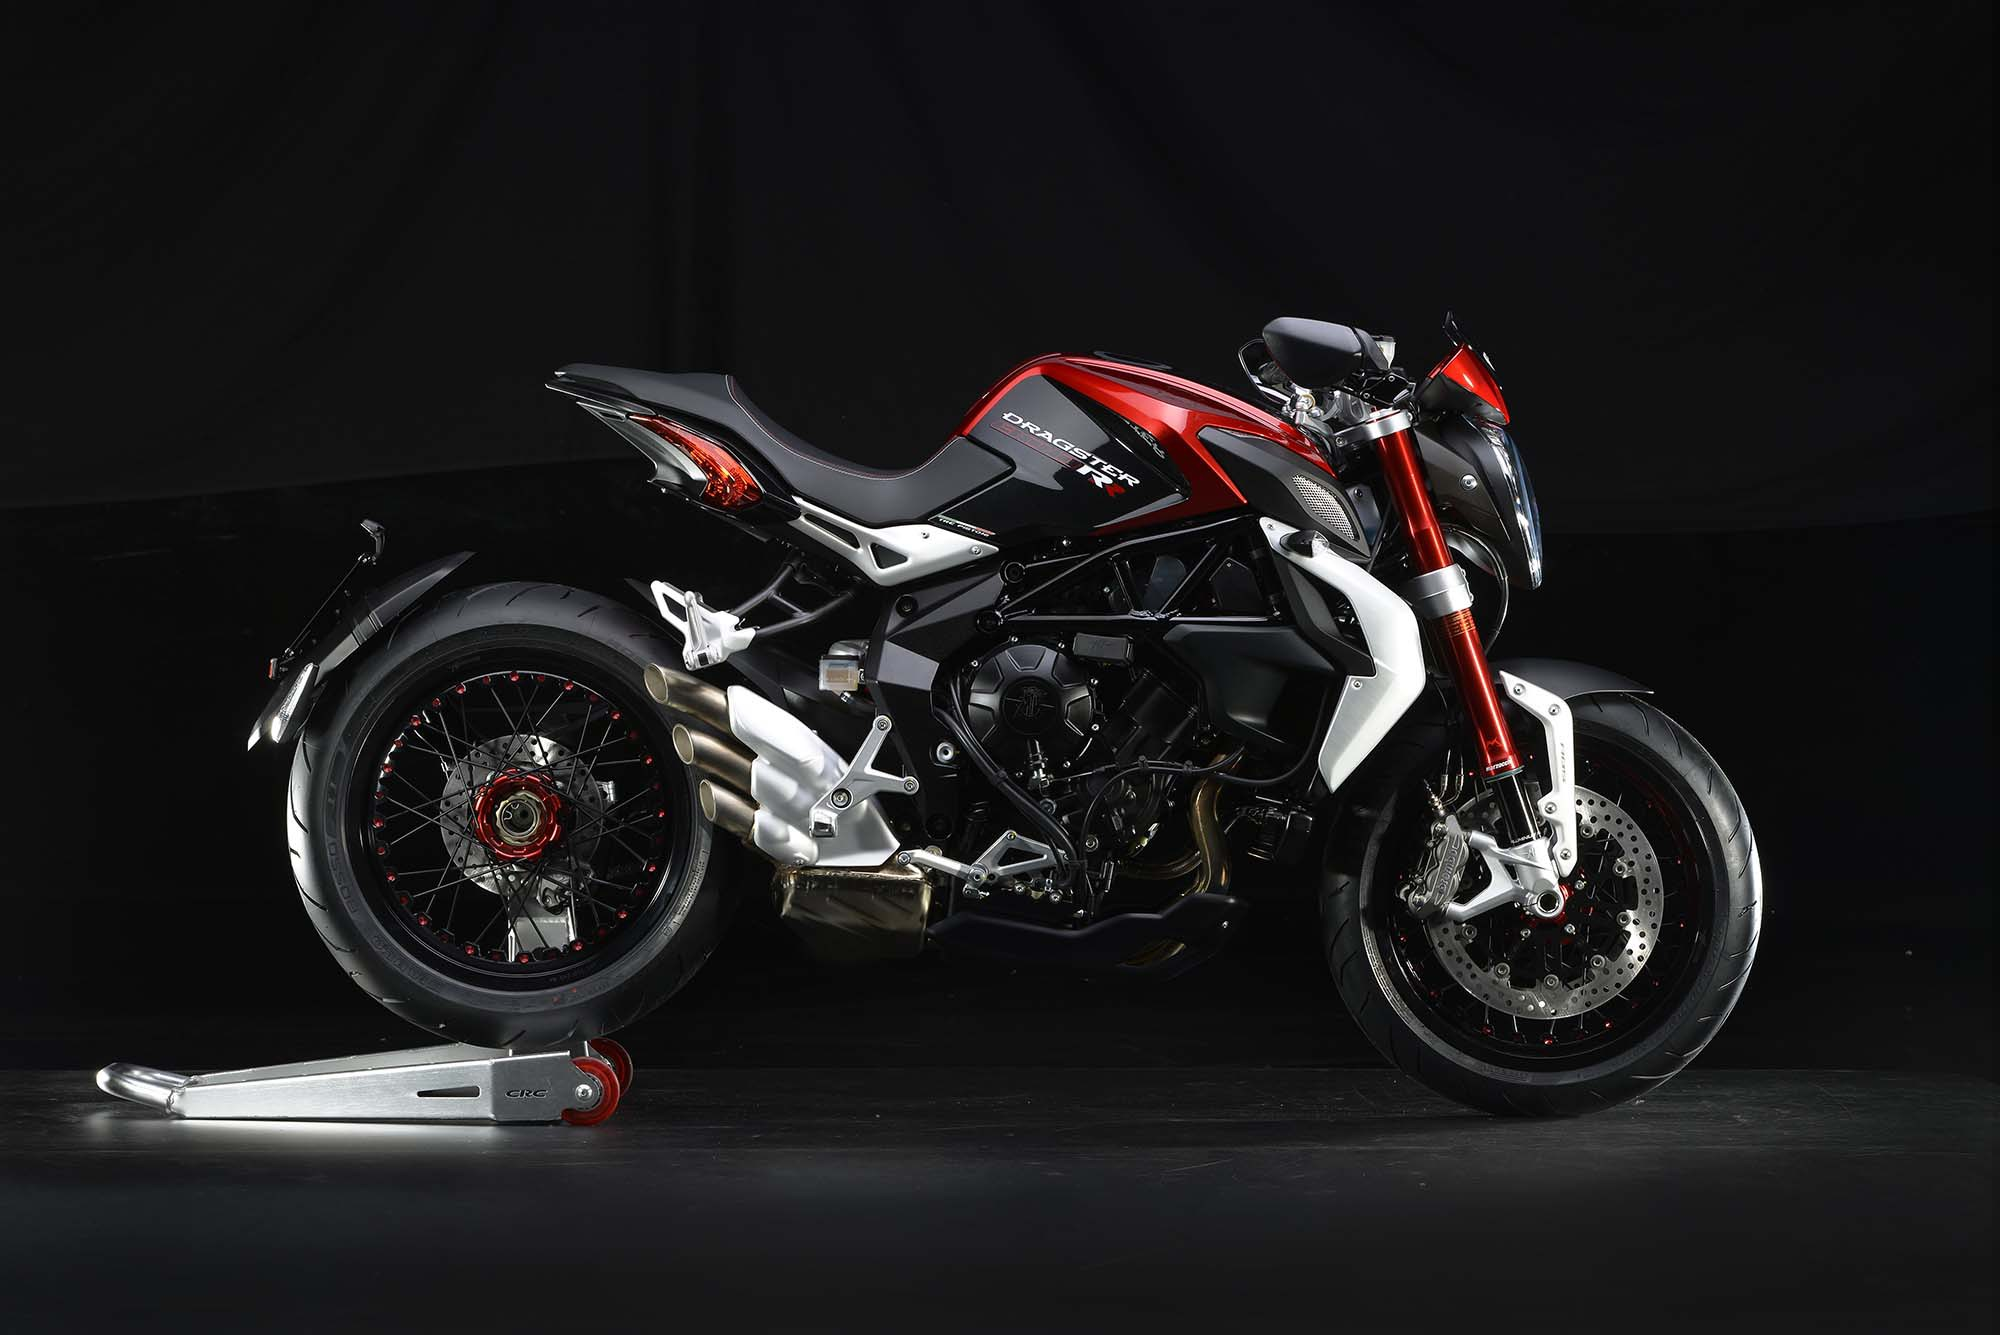 mv agusta introduces brutale 800 dragster rr with video motorcycle. Black Bedroom Furniture Sets. Home Design Ideas